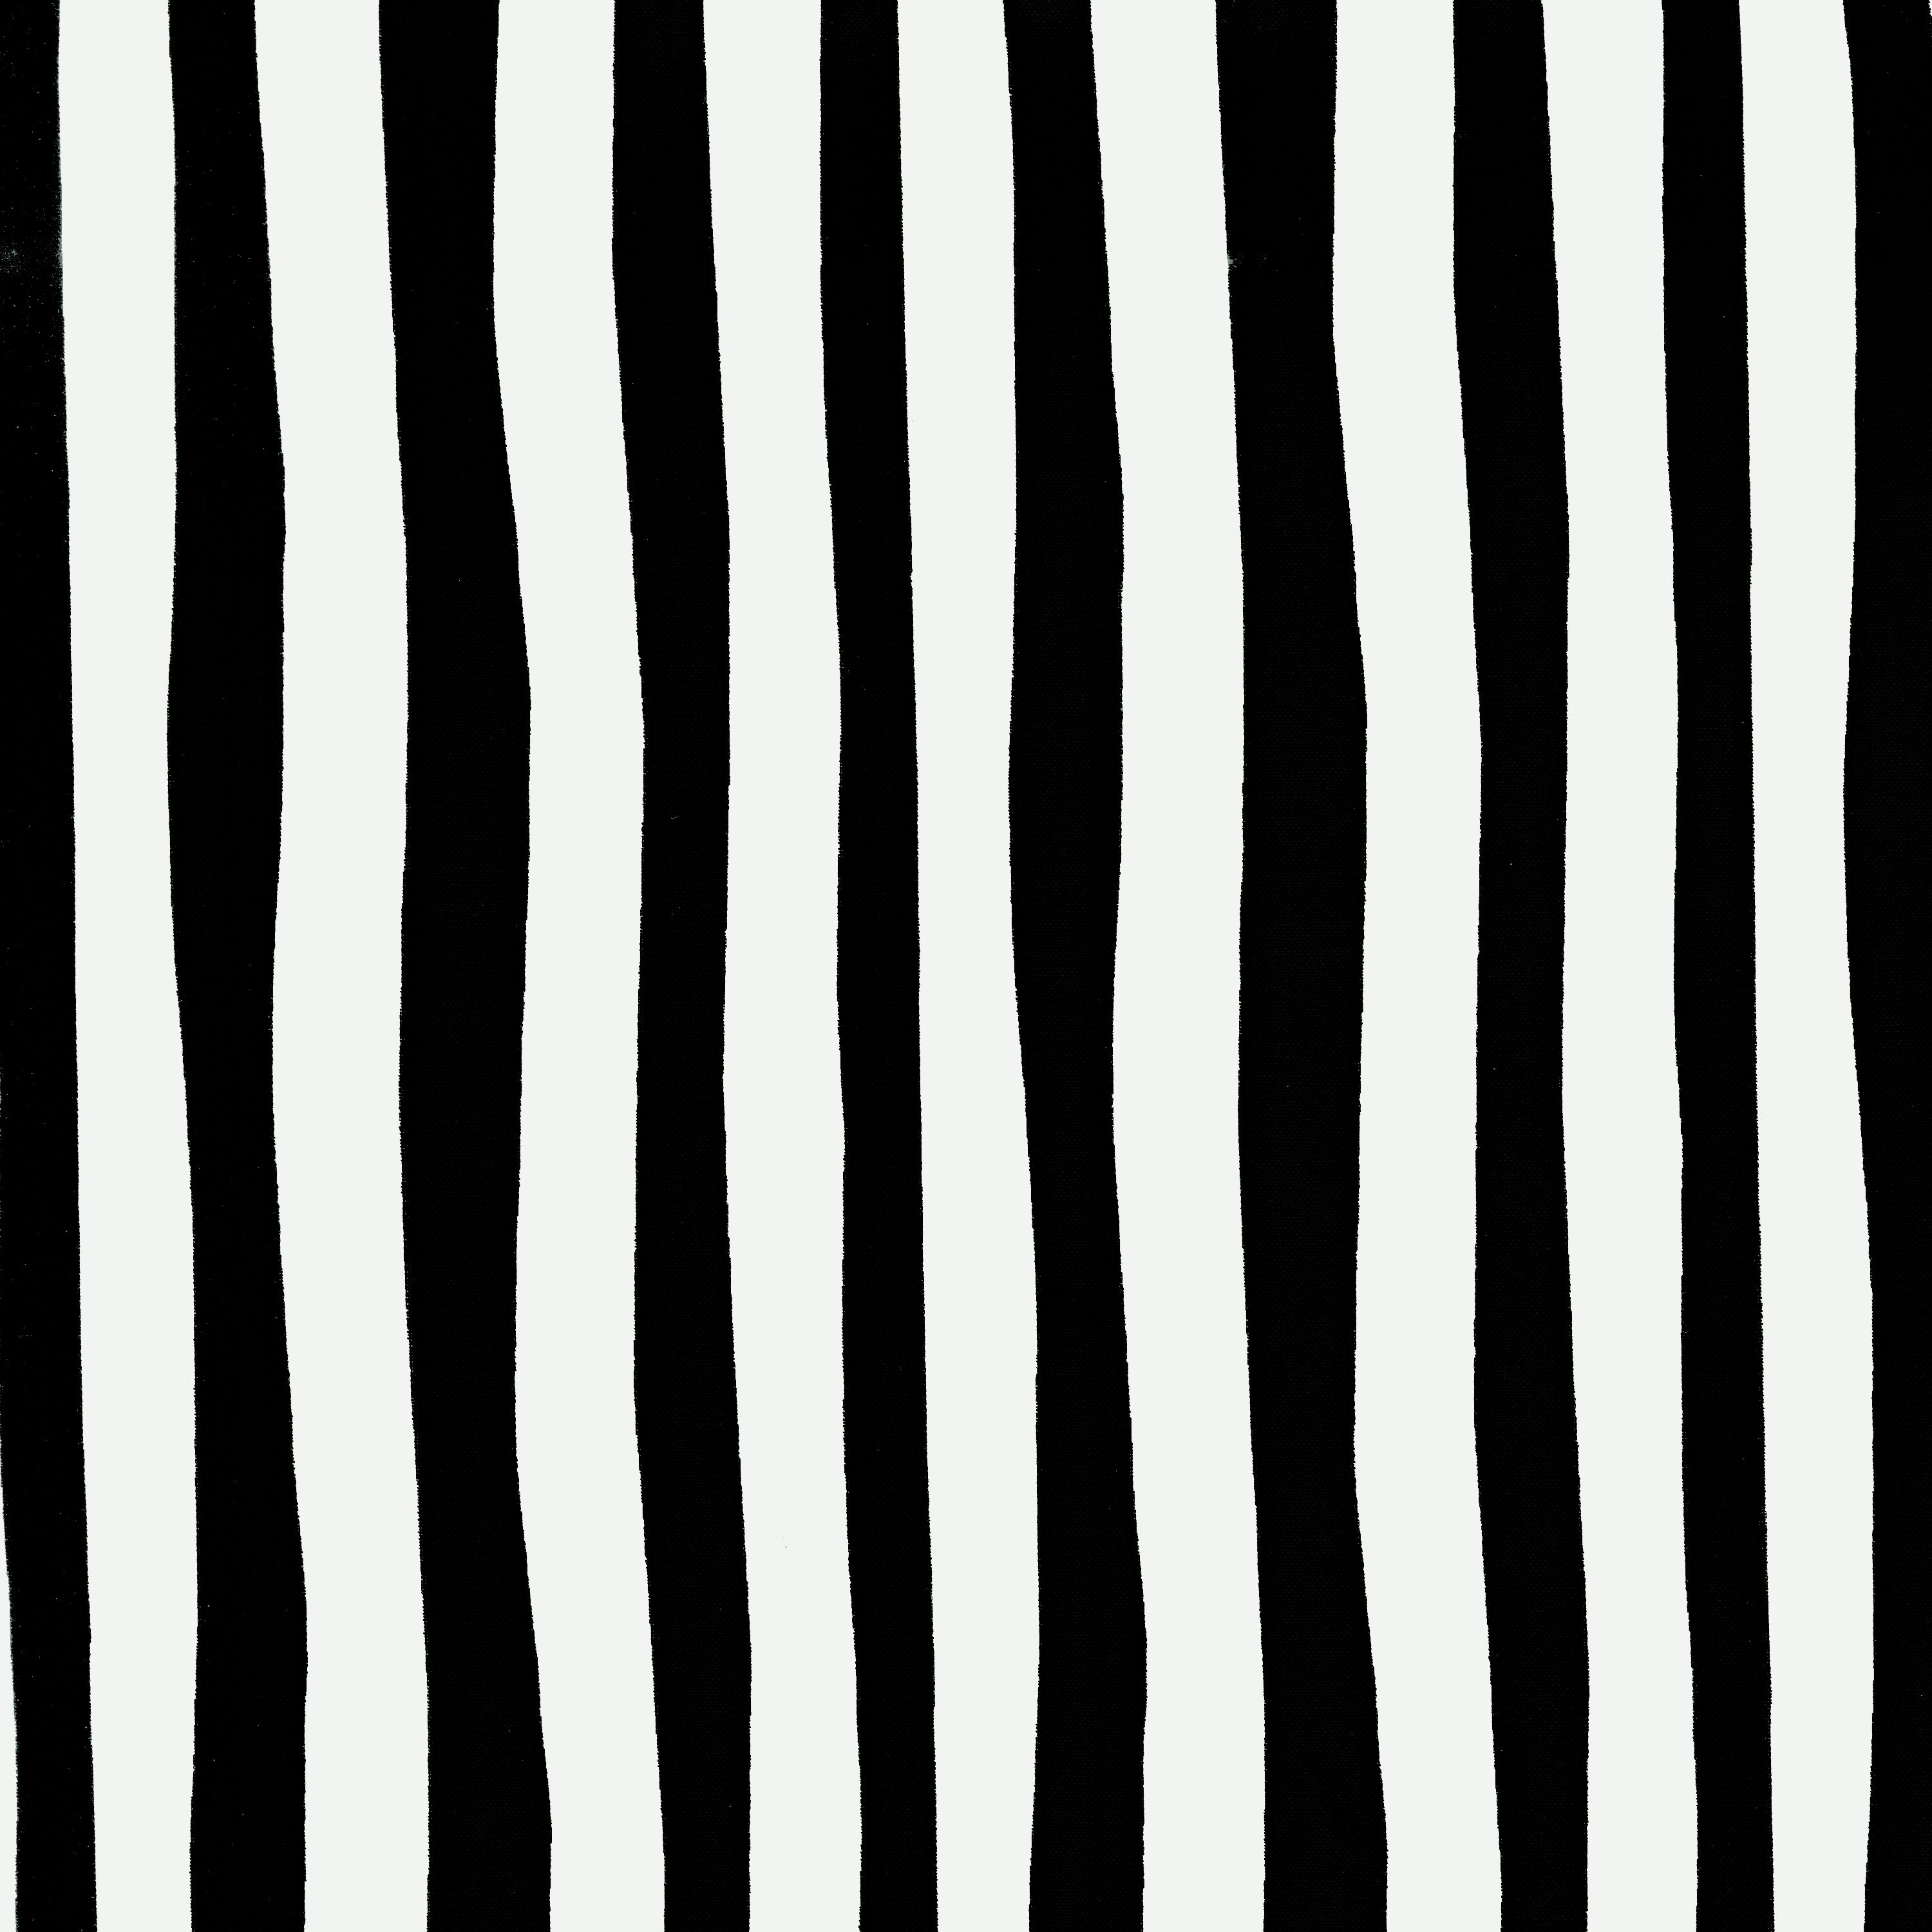 Celebrate Seuss! Minky Cuddle Squiggle Stripe Black/White Fabric